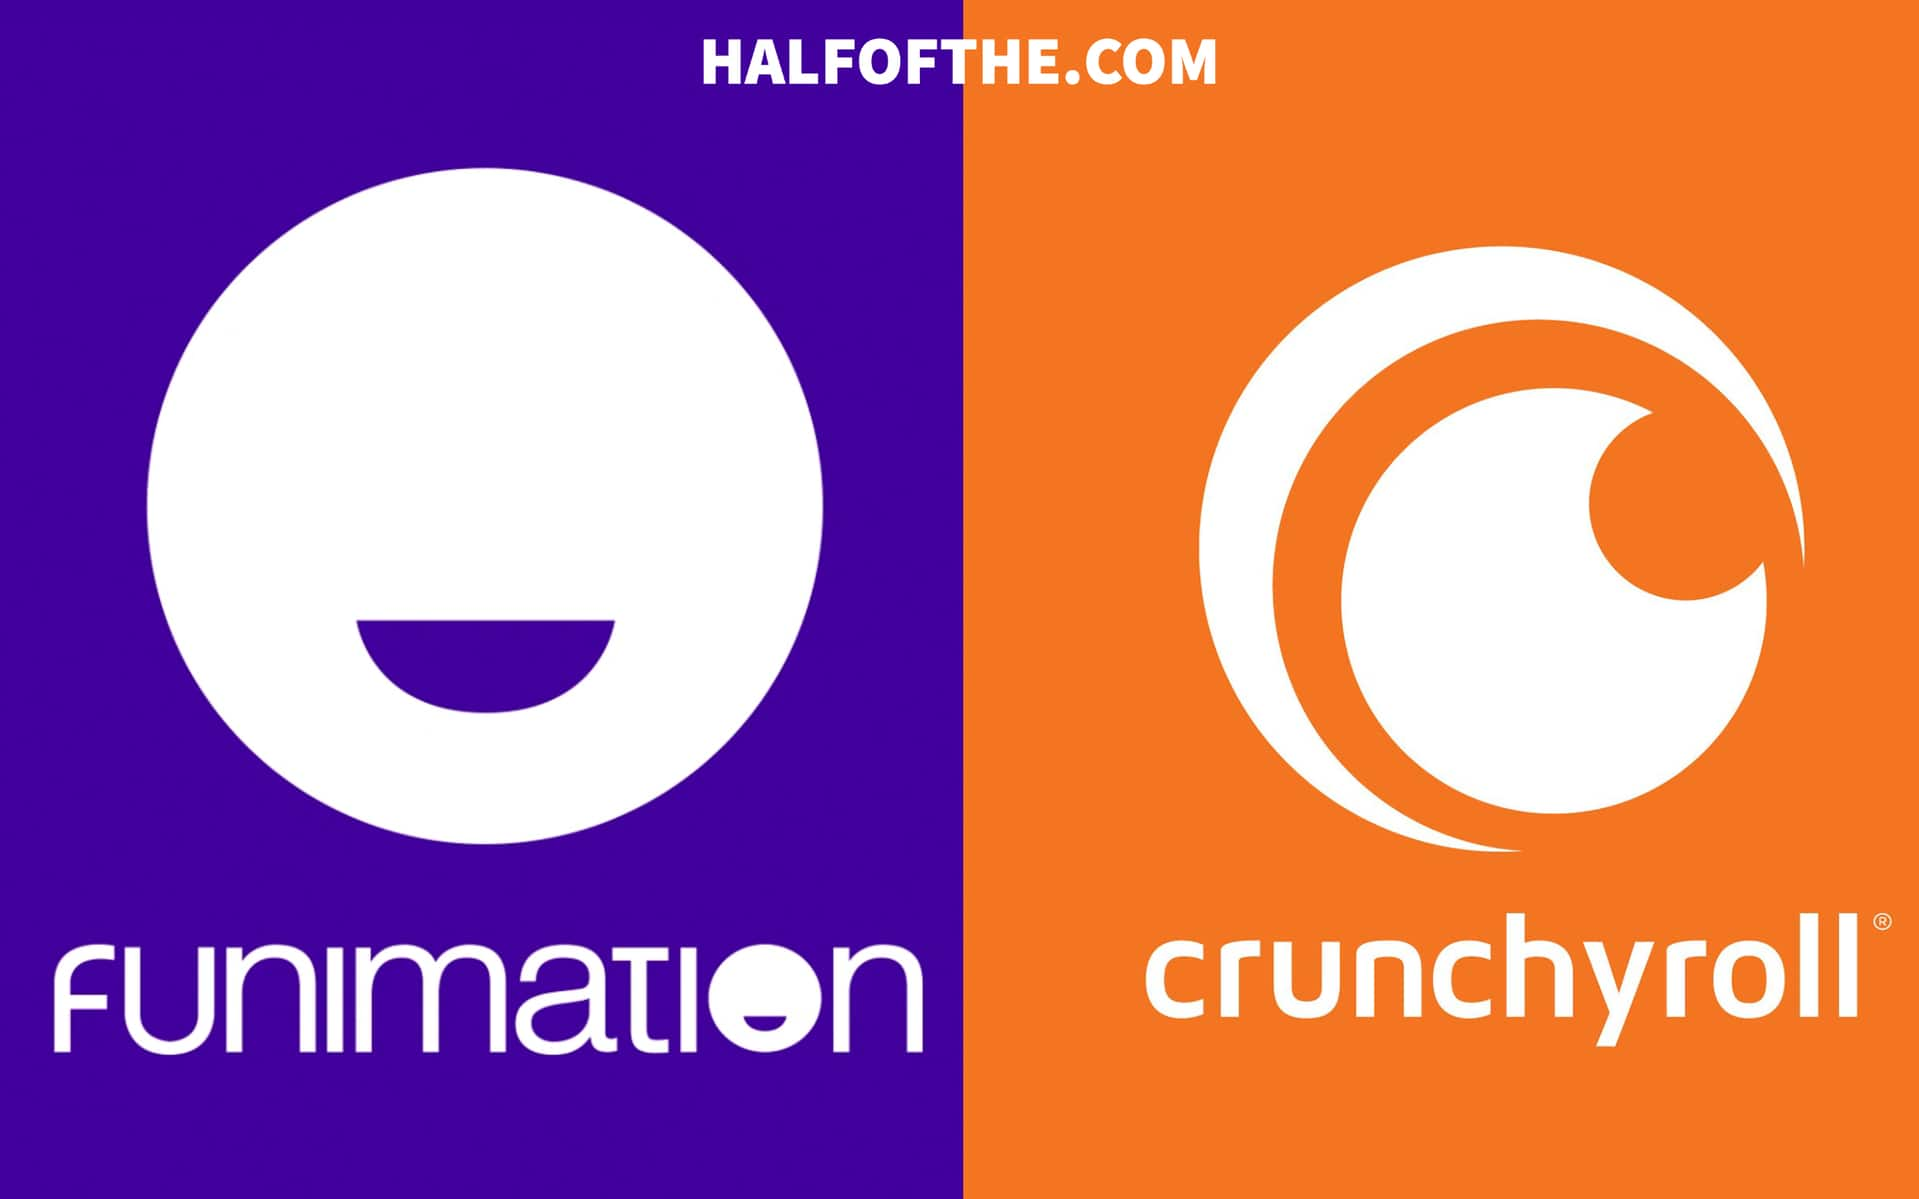 Crunchyroll vs FUNimation: What's the Best Anime Streaming Service?